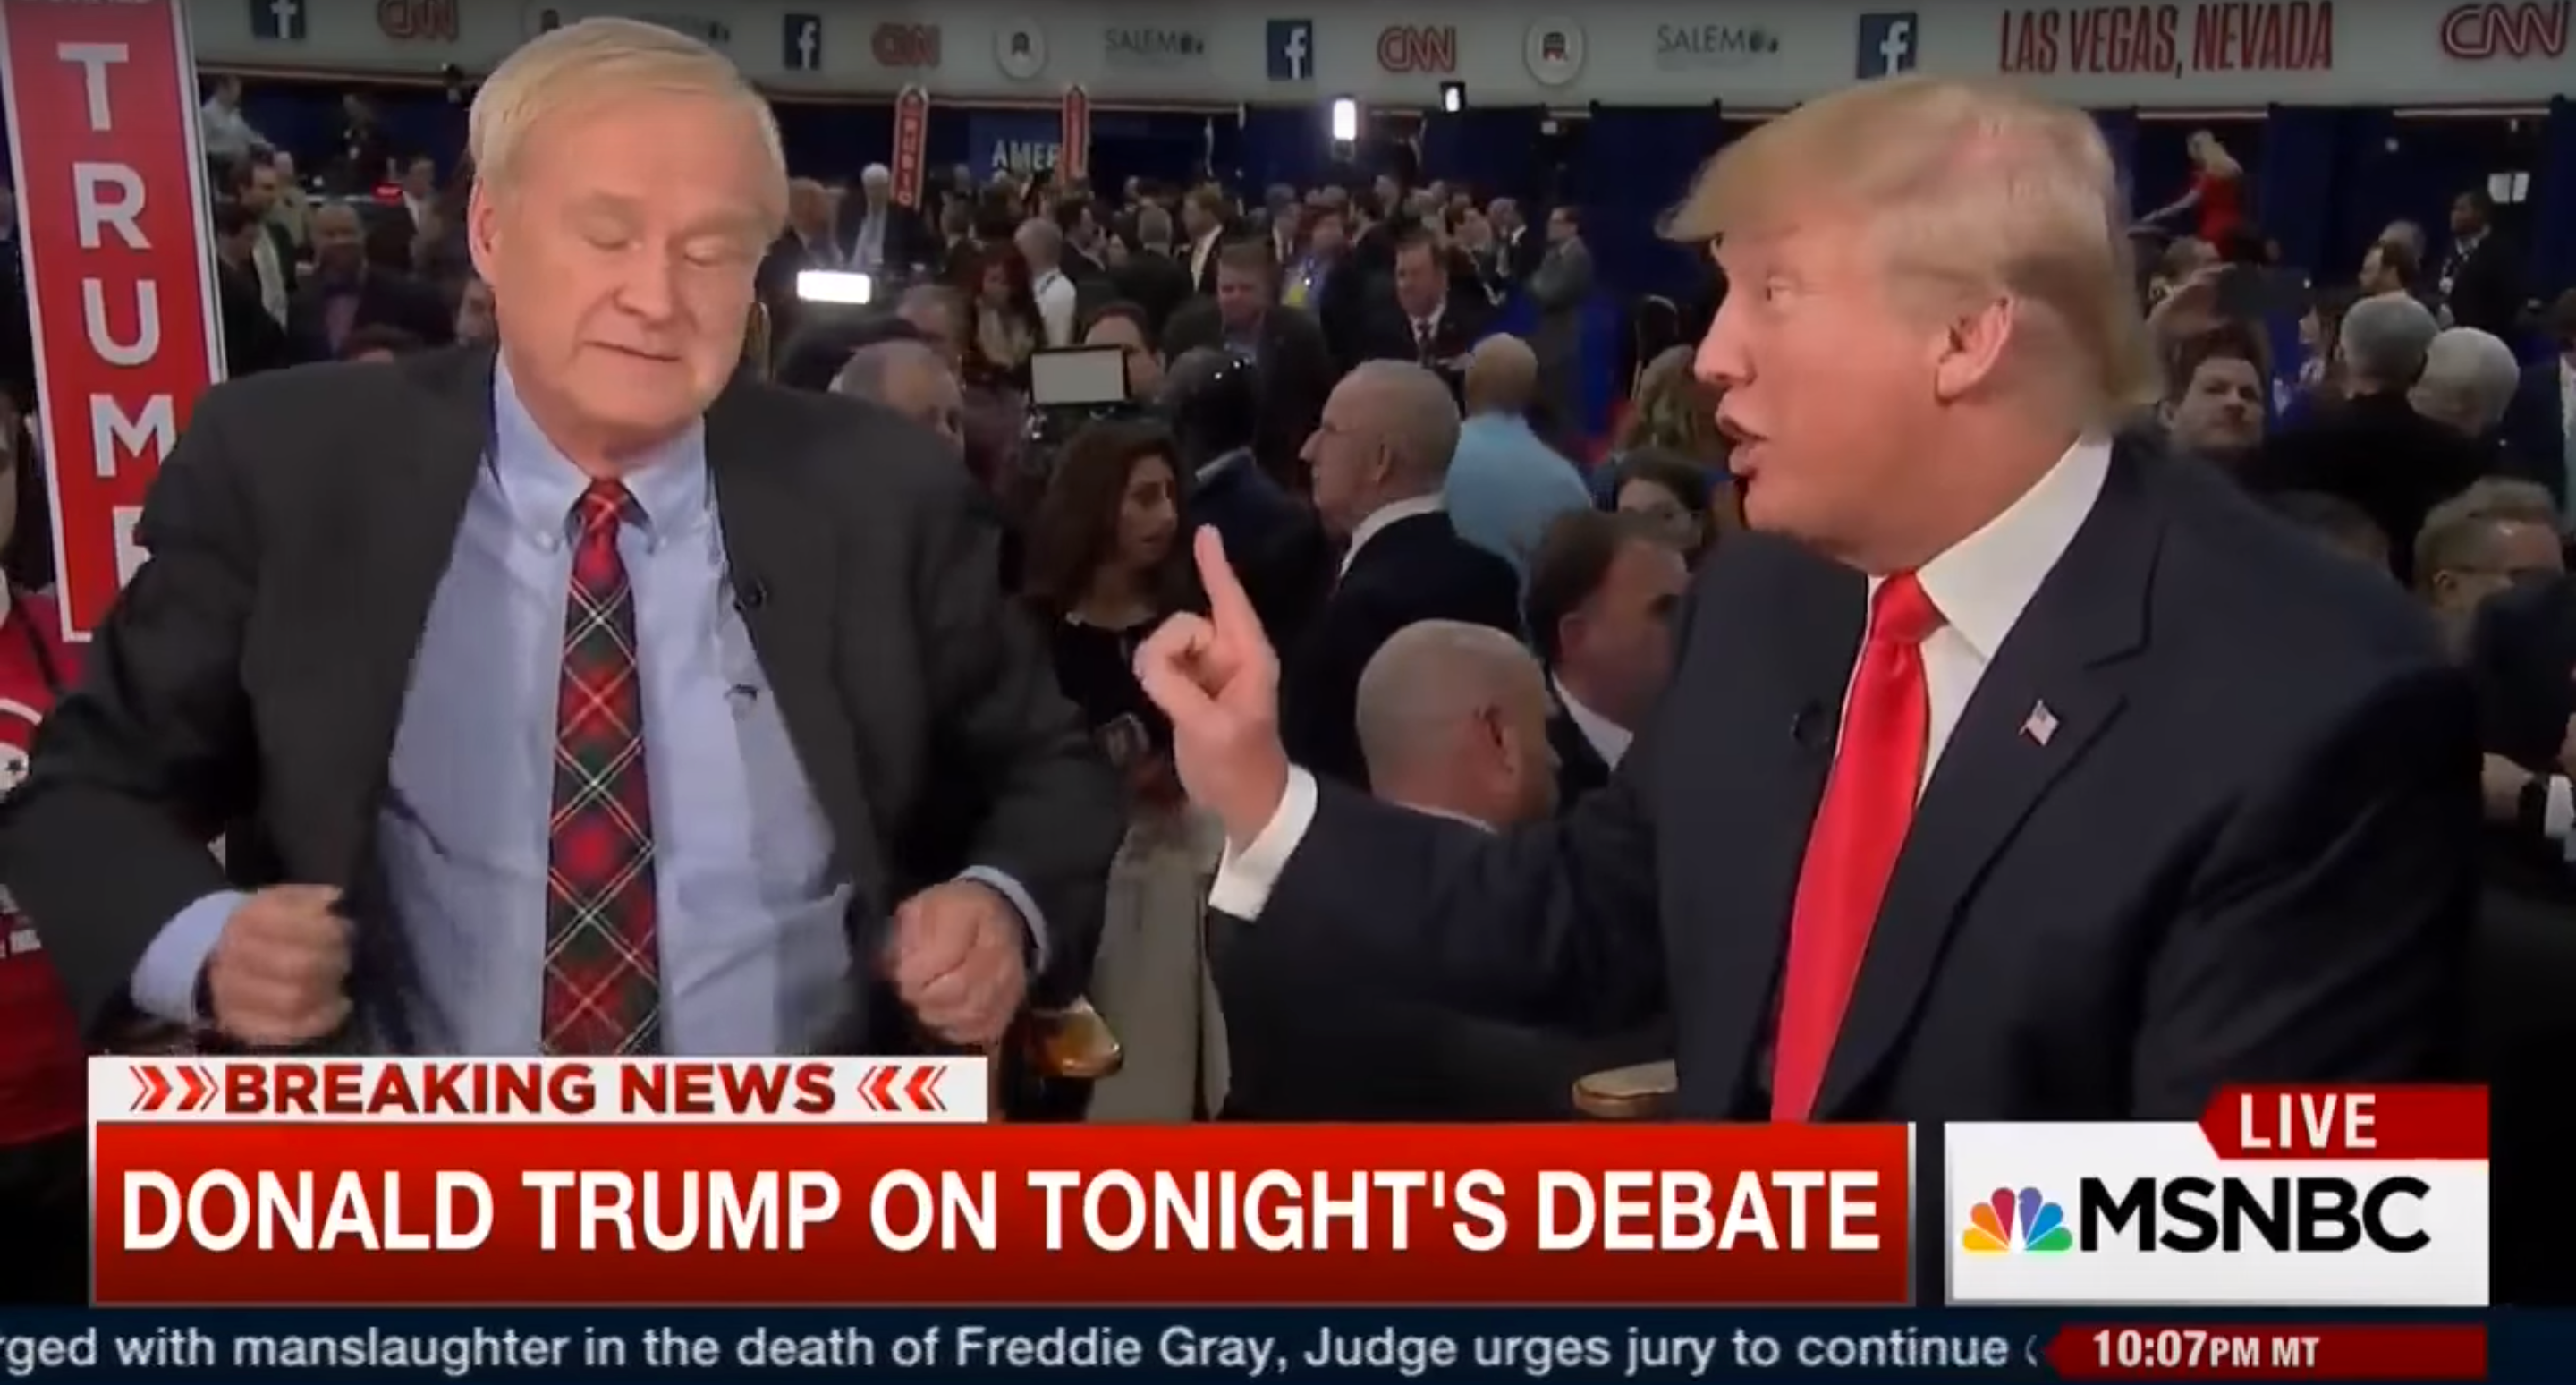 Chris Matthews is upset Trump won't address Obama's birth certificate